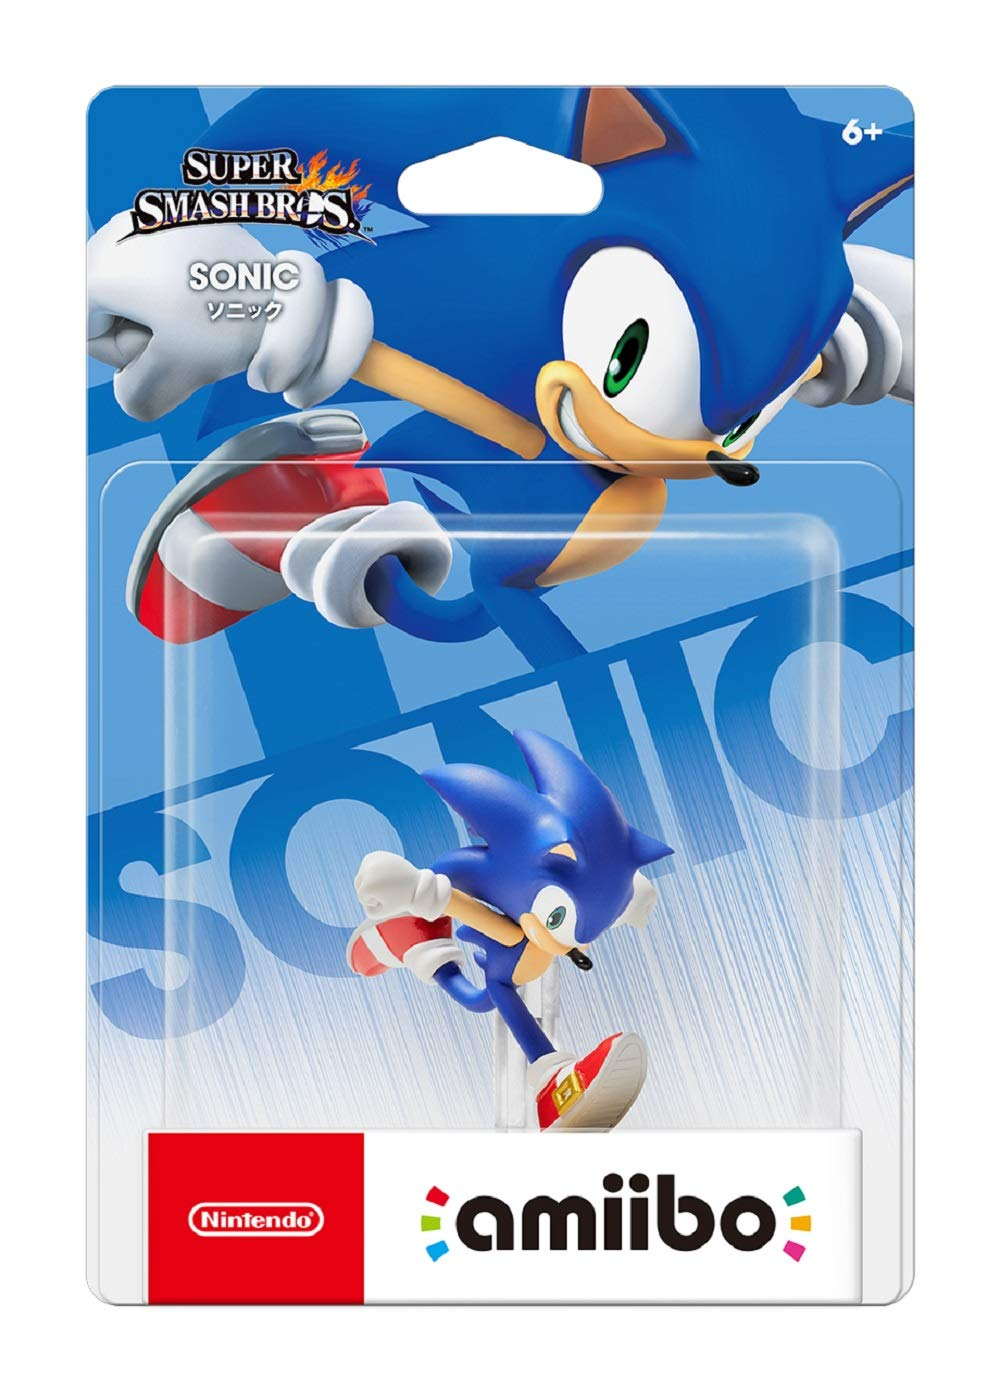 Sonic amiibo - Japan Import (Super Smash Bros Series) by Nintendo (Image #2)